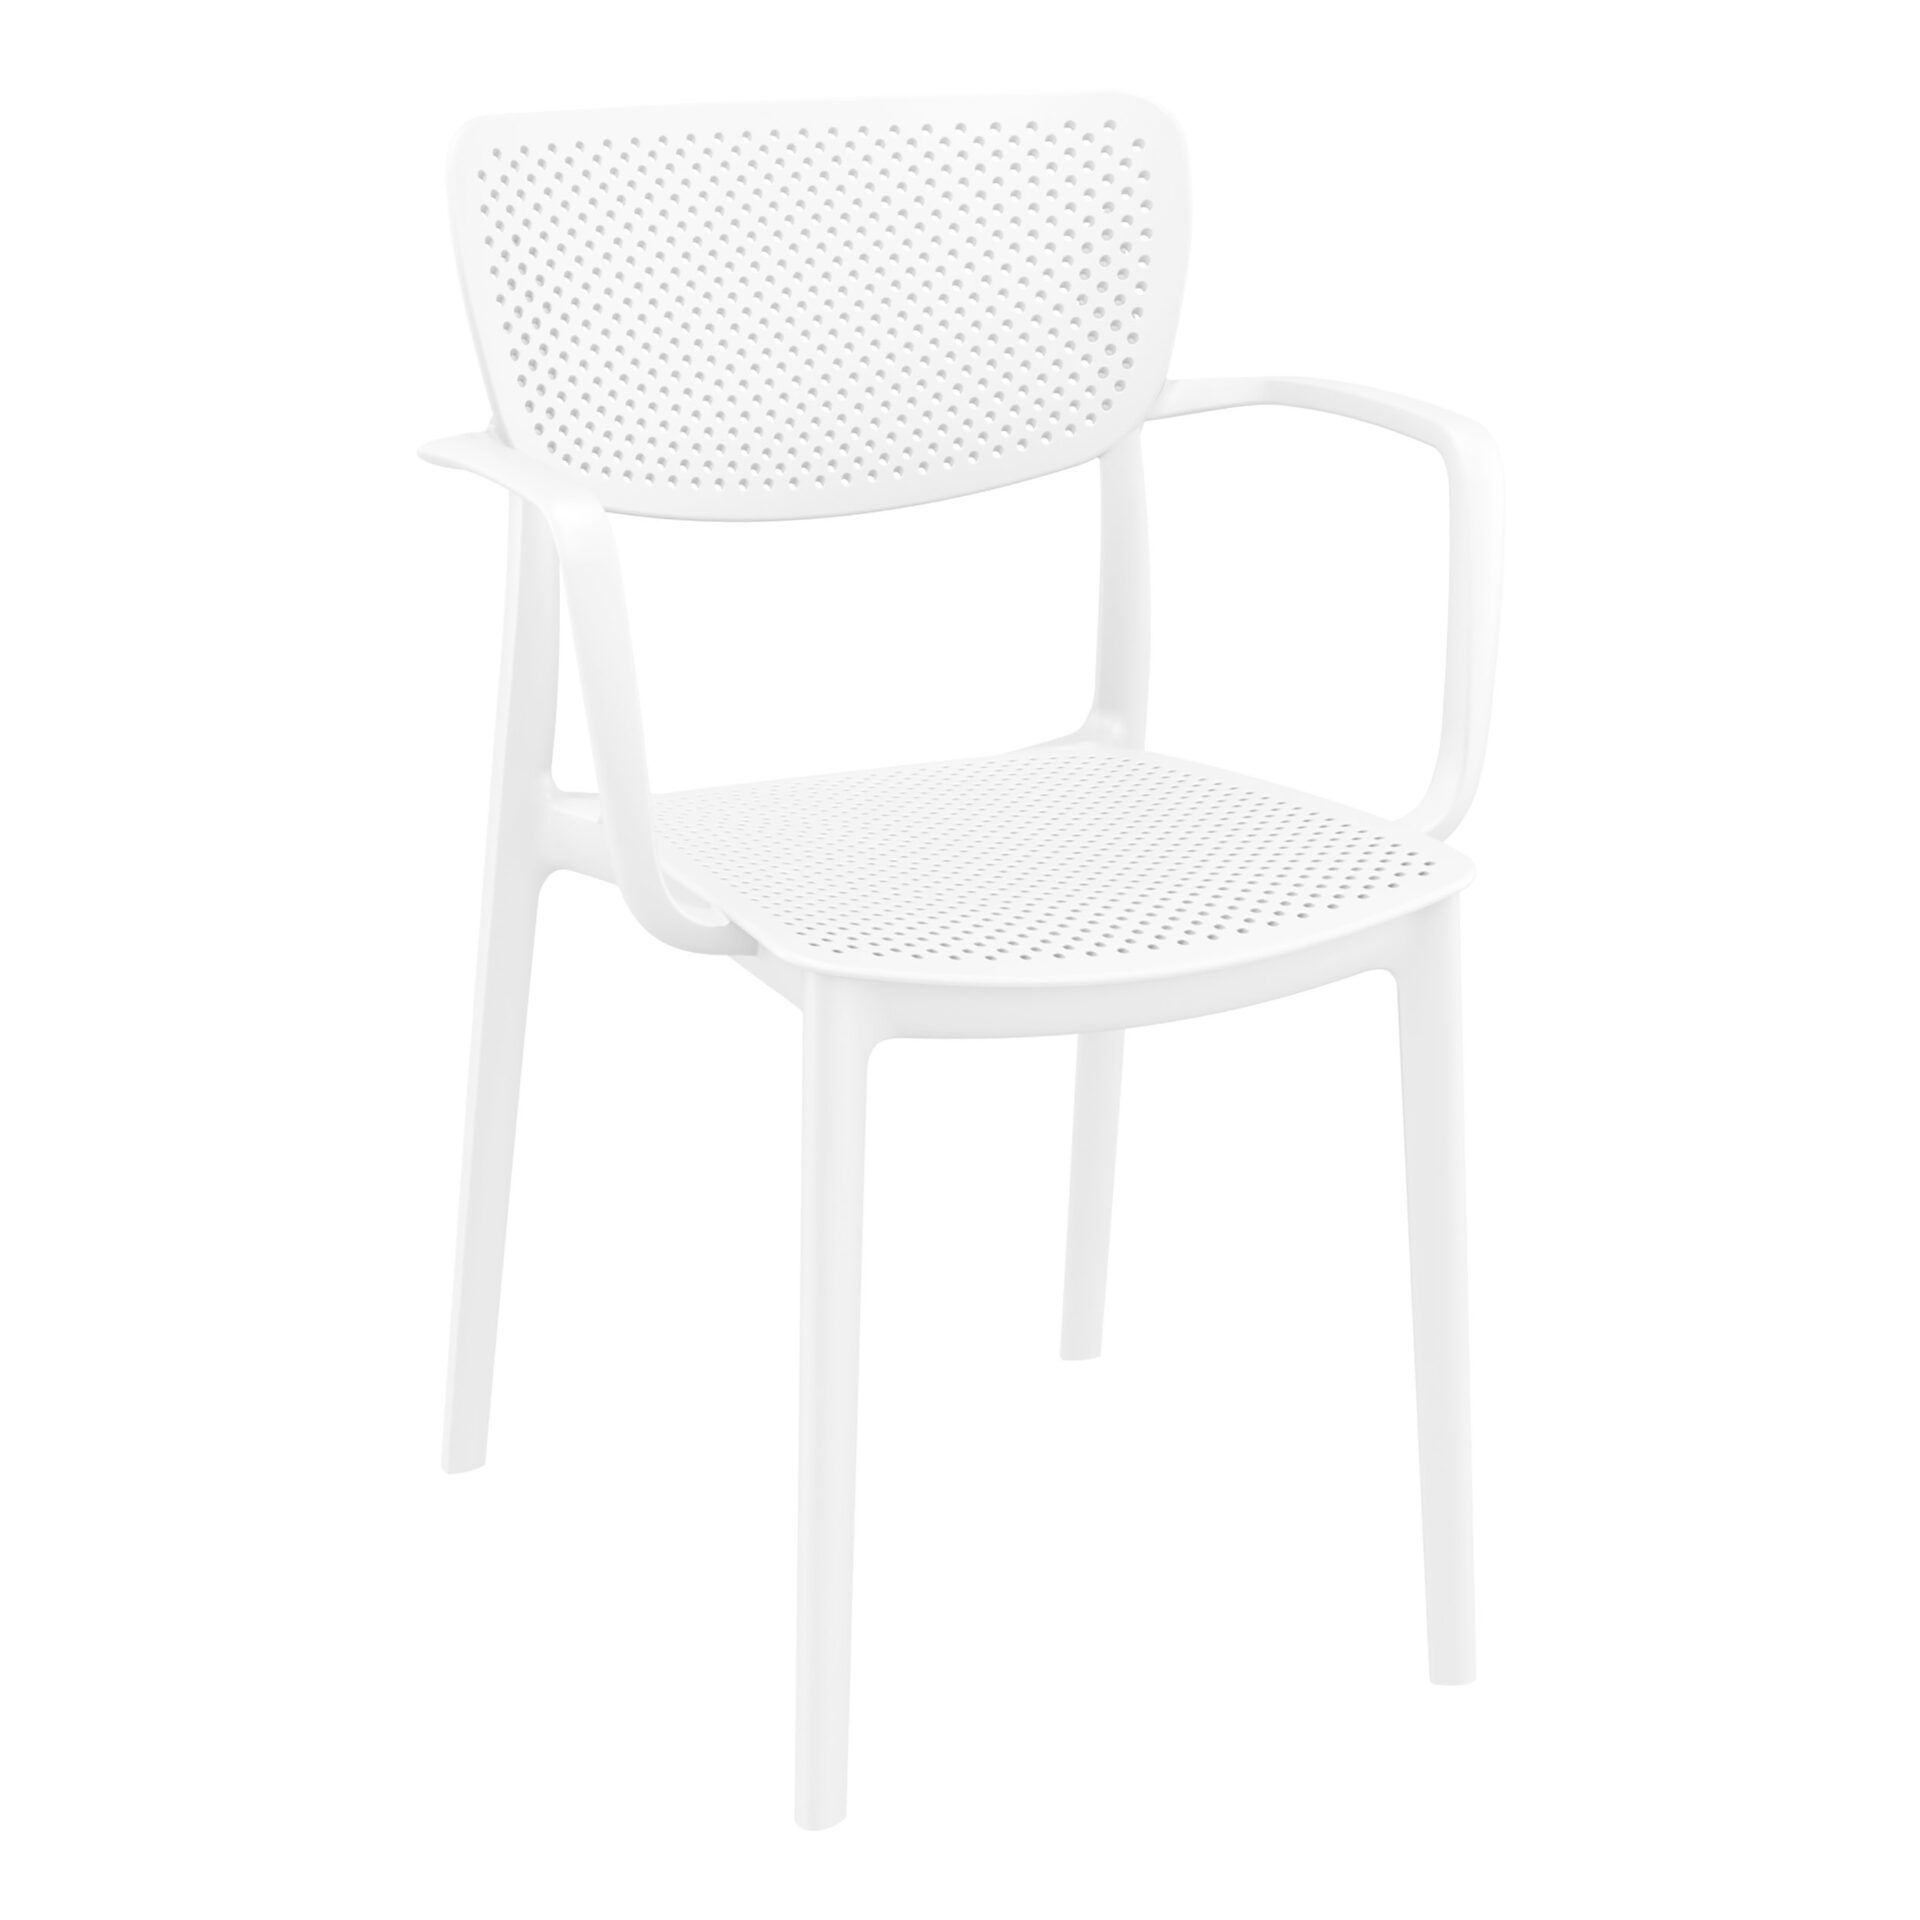 polypropylene hospitality seating loft armchair white front side